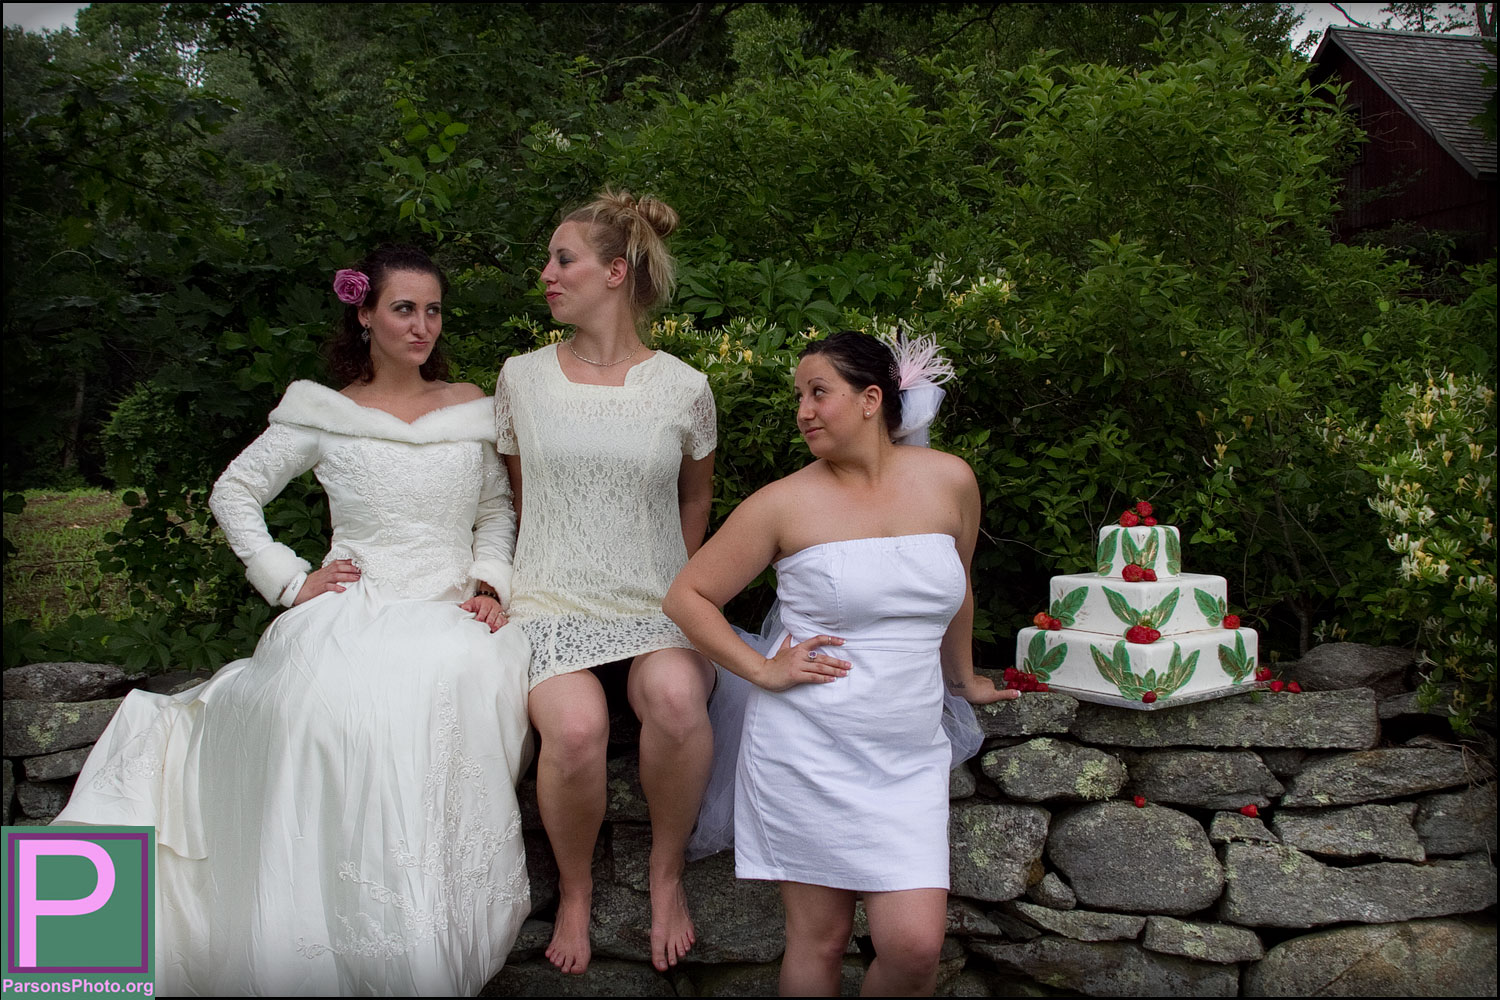 Parsons Photography: Trash the Dress - Coventry Farmers\' Market Blog ...